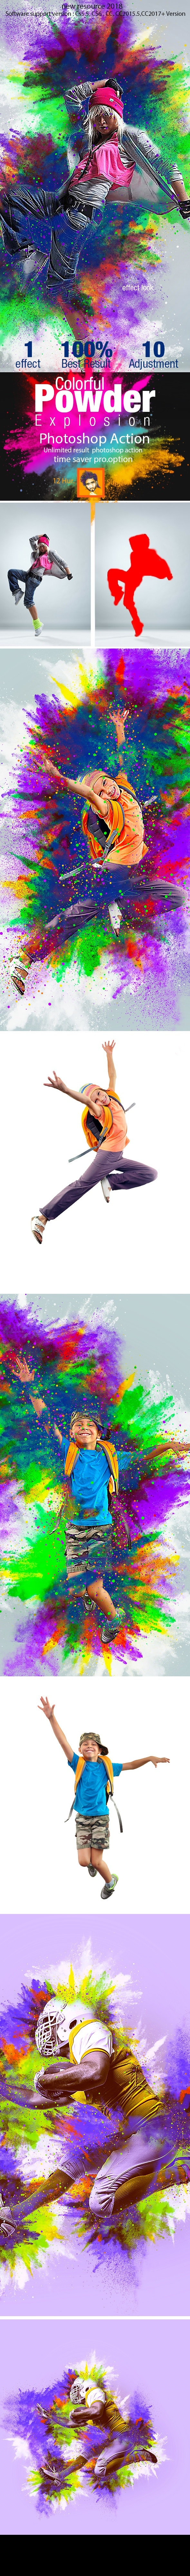 Colorful Powder Explosion Action - Photo Effects Actions